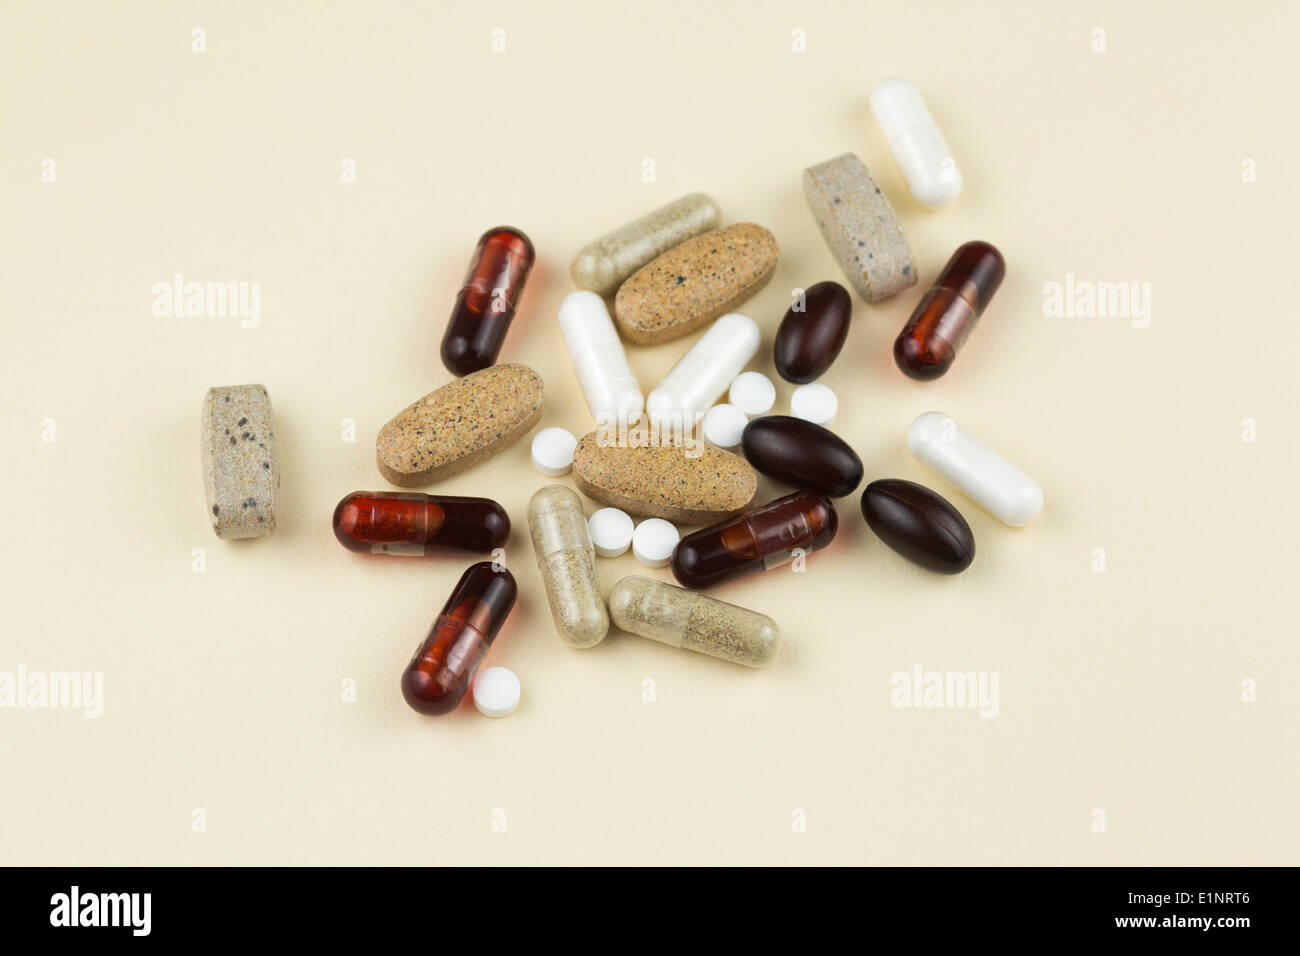 Vitamins and supplements (multivitamins, vitamin D, Coenzyme Q10, Vitamin K2, Krill oil) - Stock Image